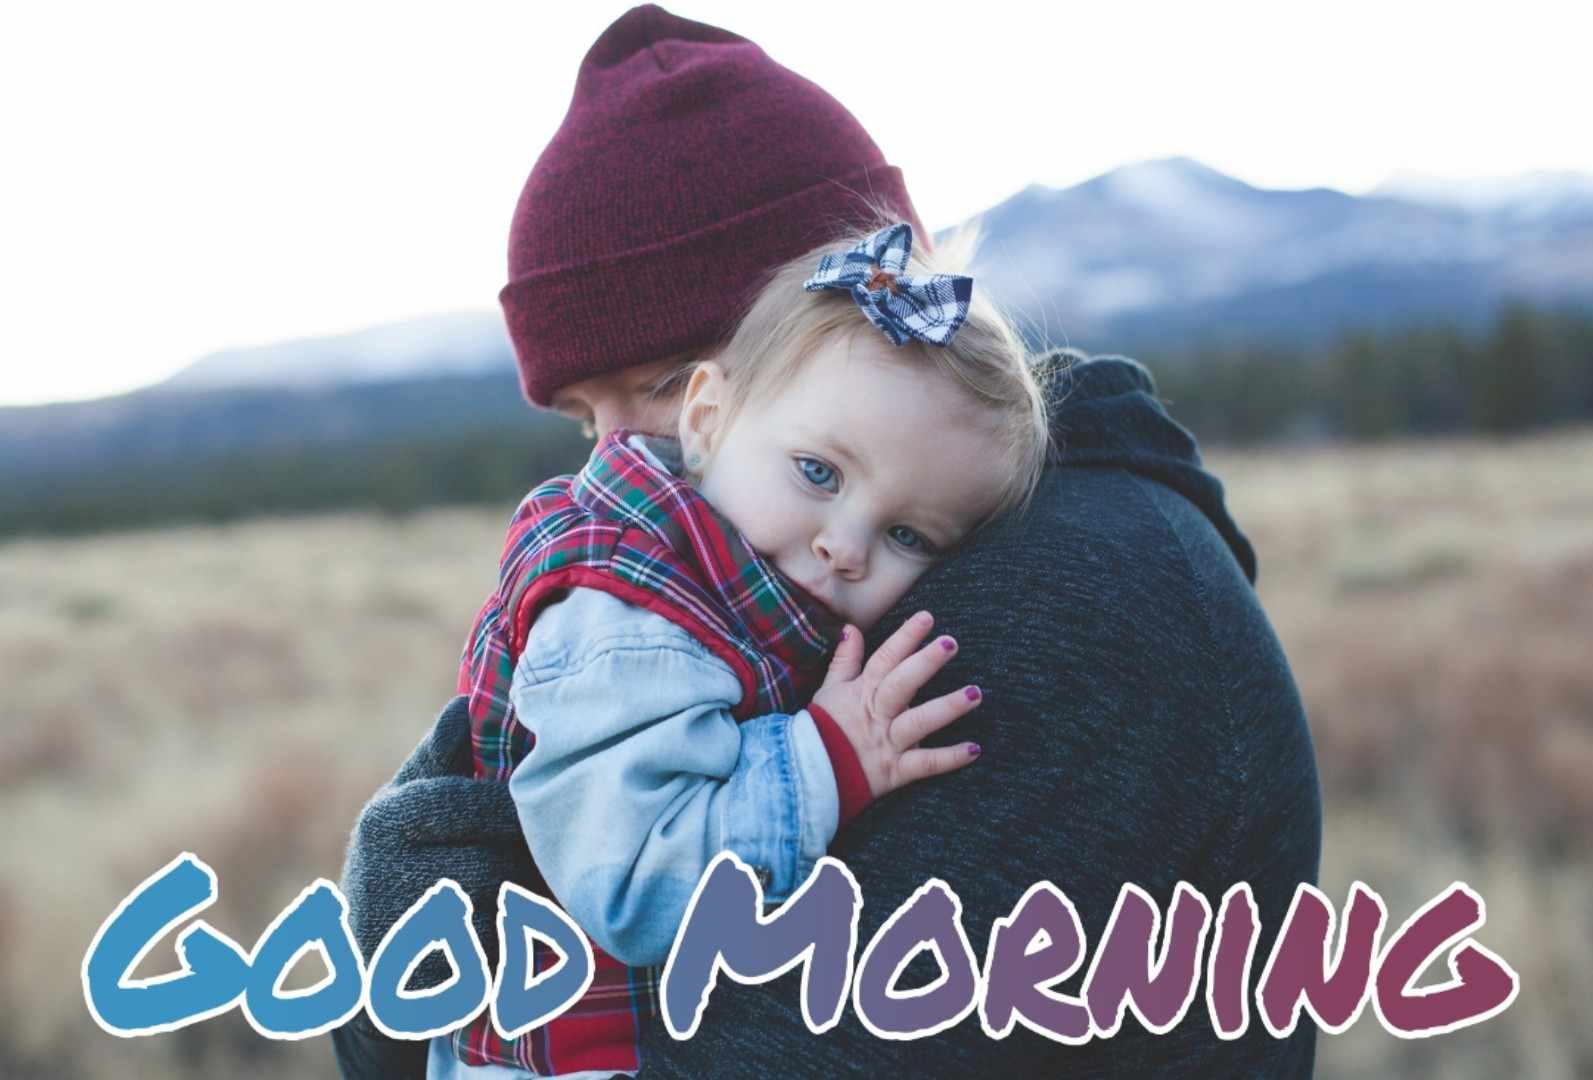 Good morning baby images with dad